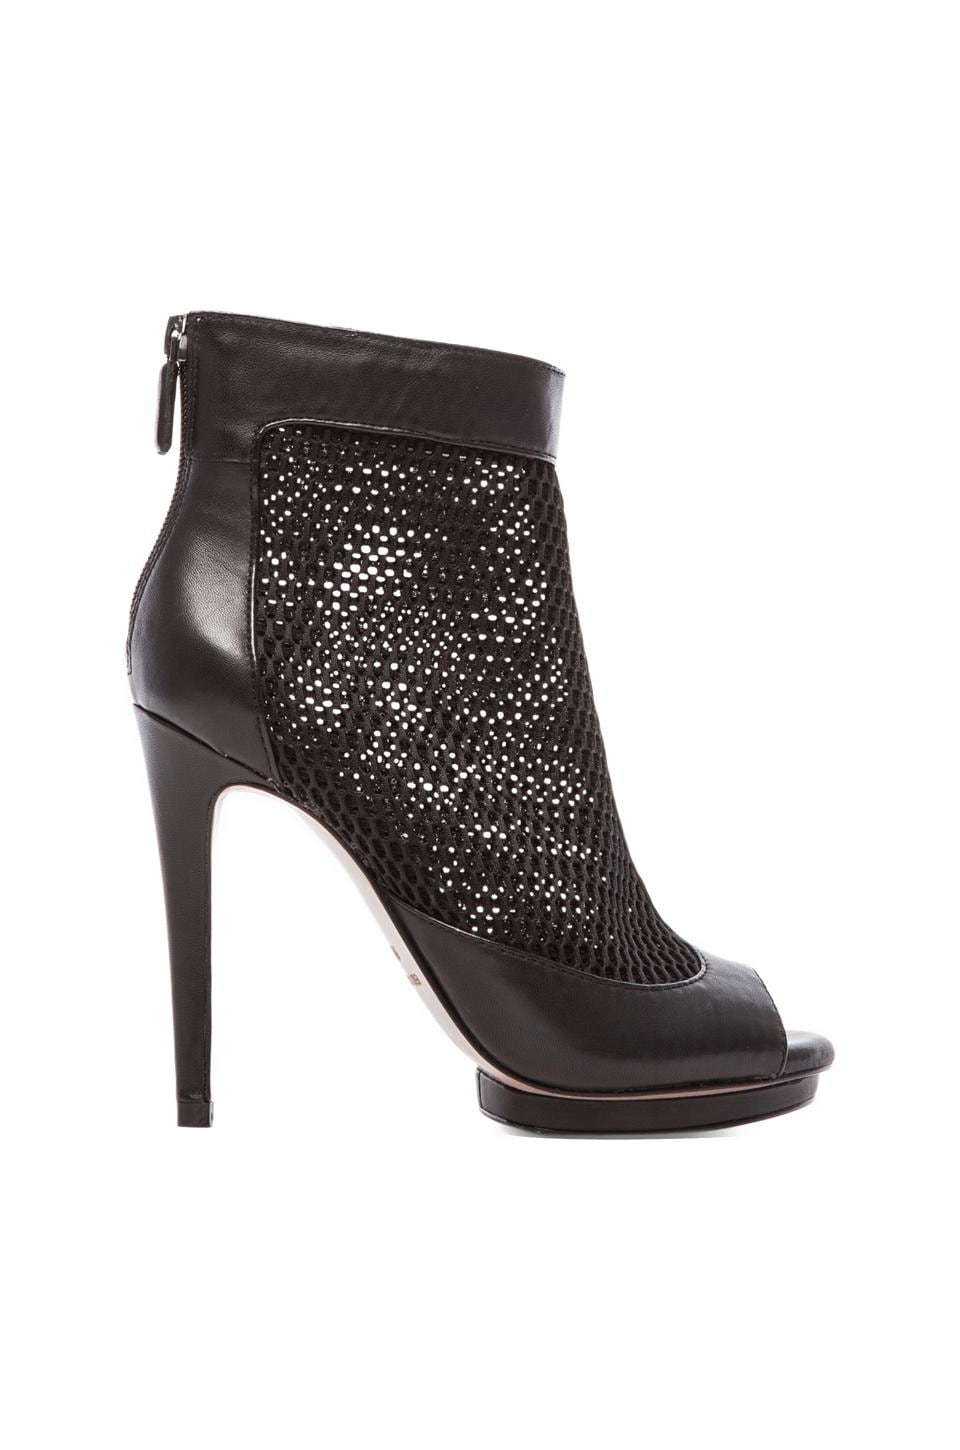 BCBGMAXAZRIA Ginni Mesh Booties in Black